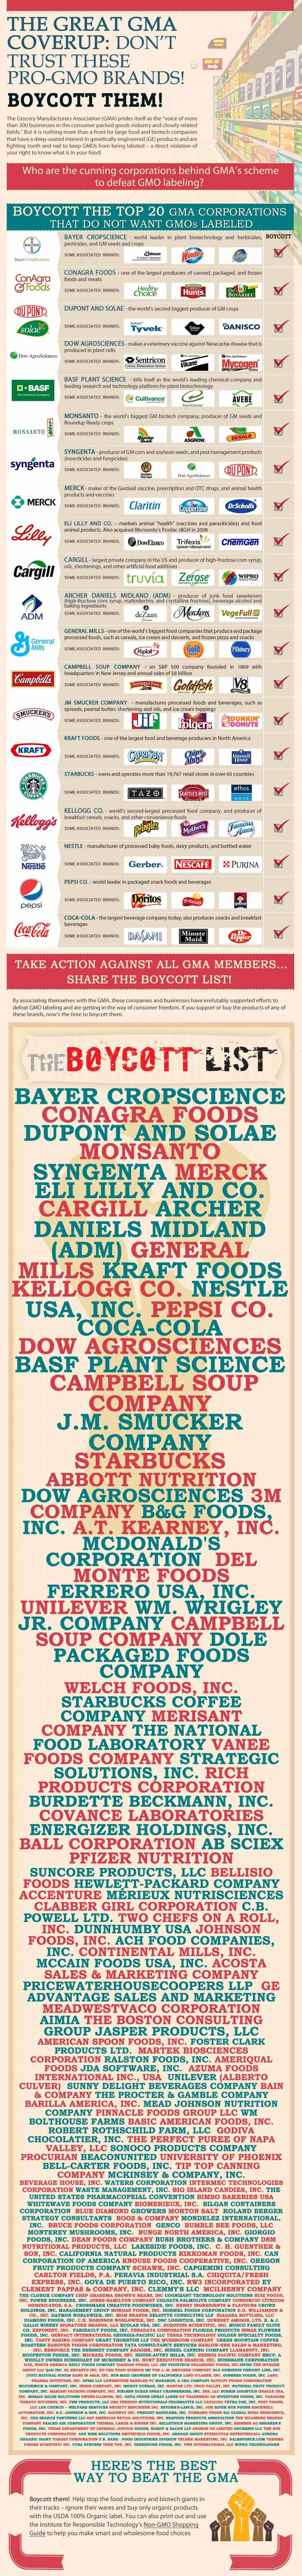 These pro-GMO brands hiding behind the Grocery Manufacturers Association (GMA) will do everything they can to keep GMOs in our food supply - boycott them now! http://www.TheBoycottList.org/infographic.html